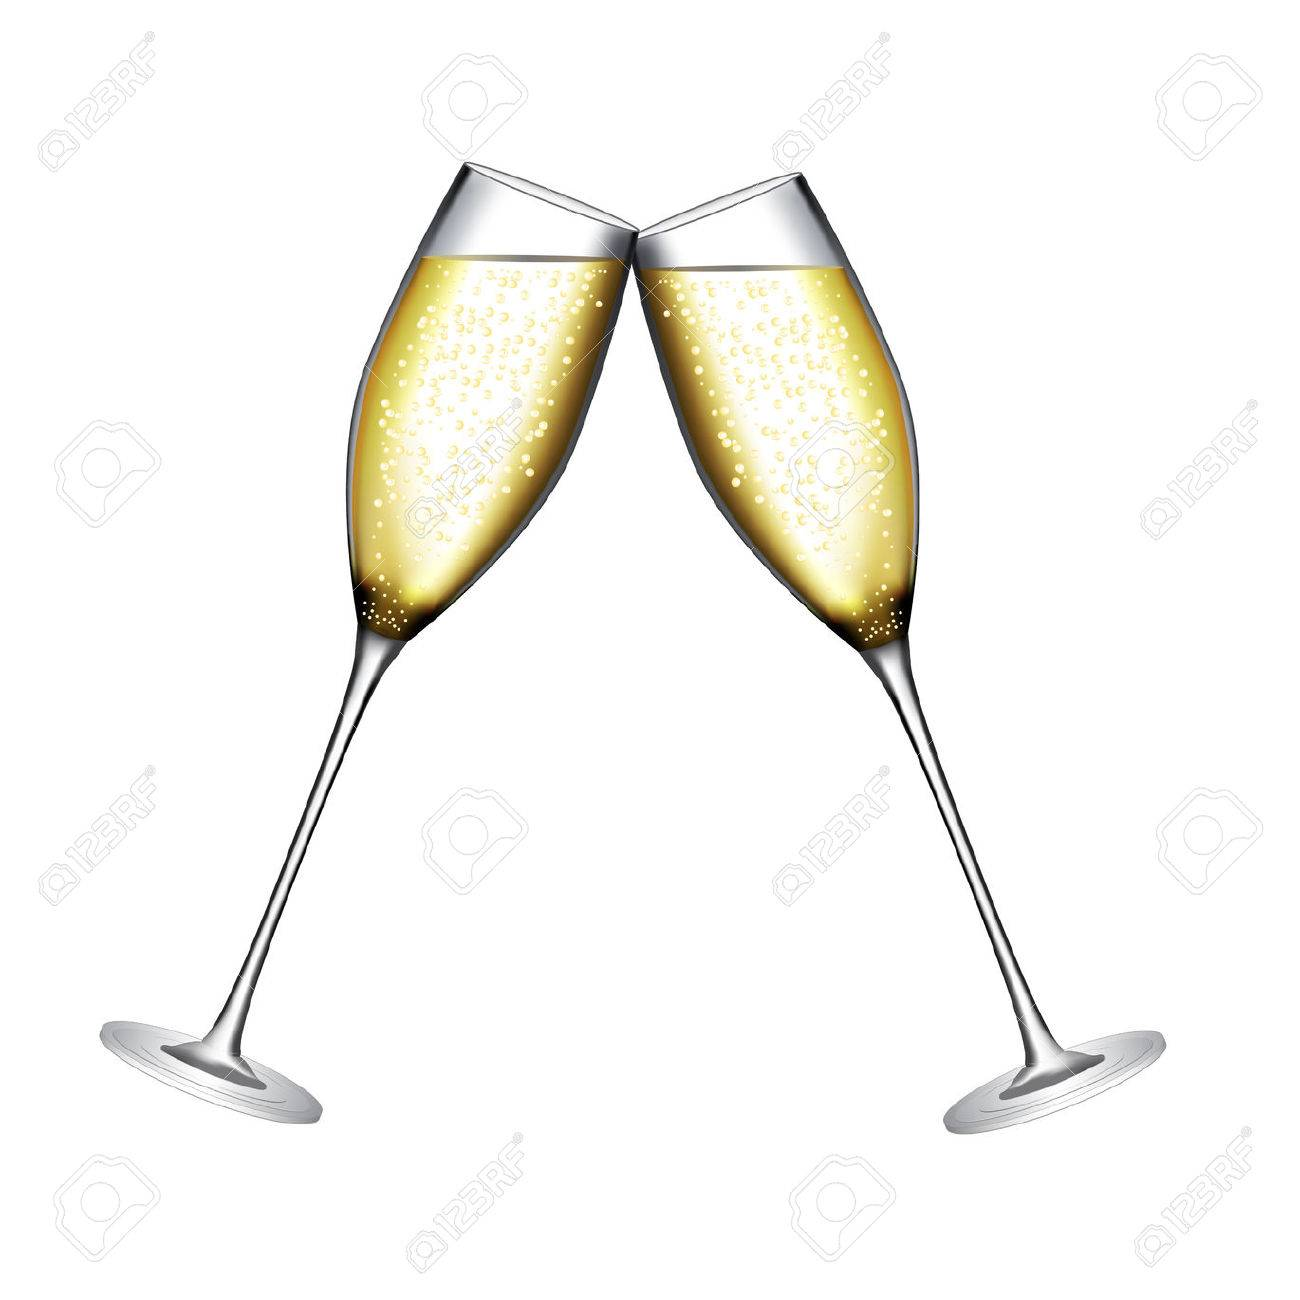 glass of champagne vector illustration royalty free cliparts rh 123rf com champagne glass clipart png champagne glass clipart black and white